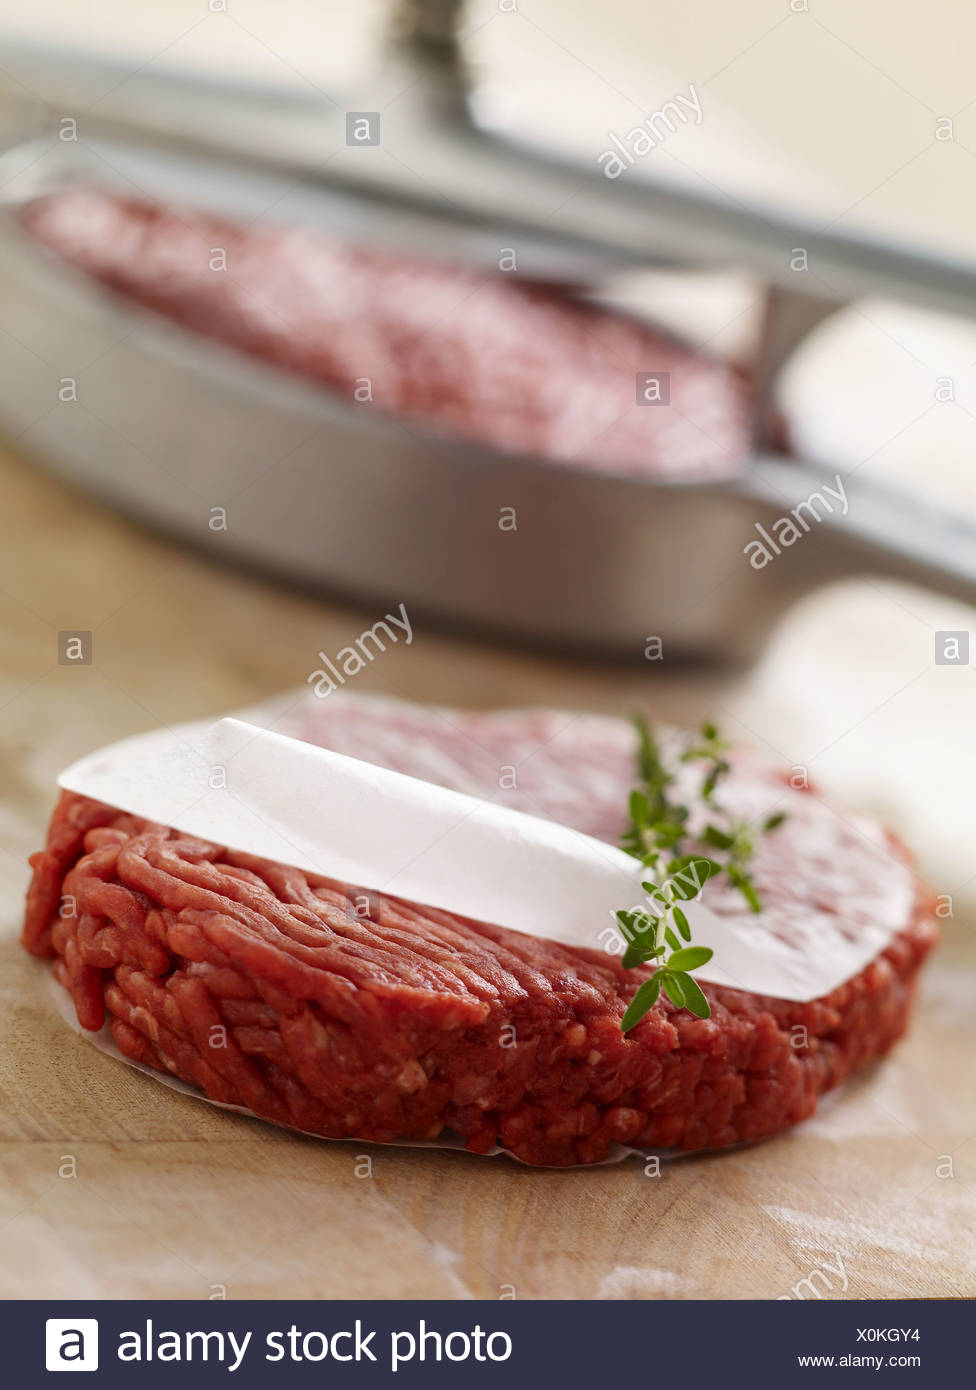 Raw hamburger called Tournedos in Marseilles - Stock Image